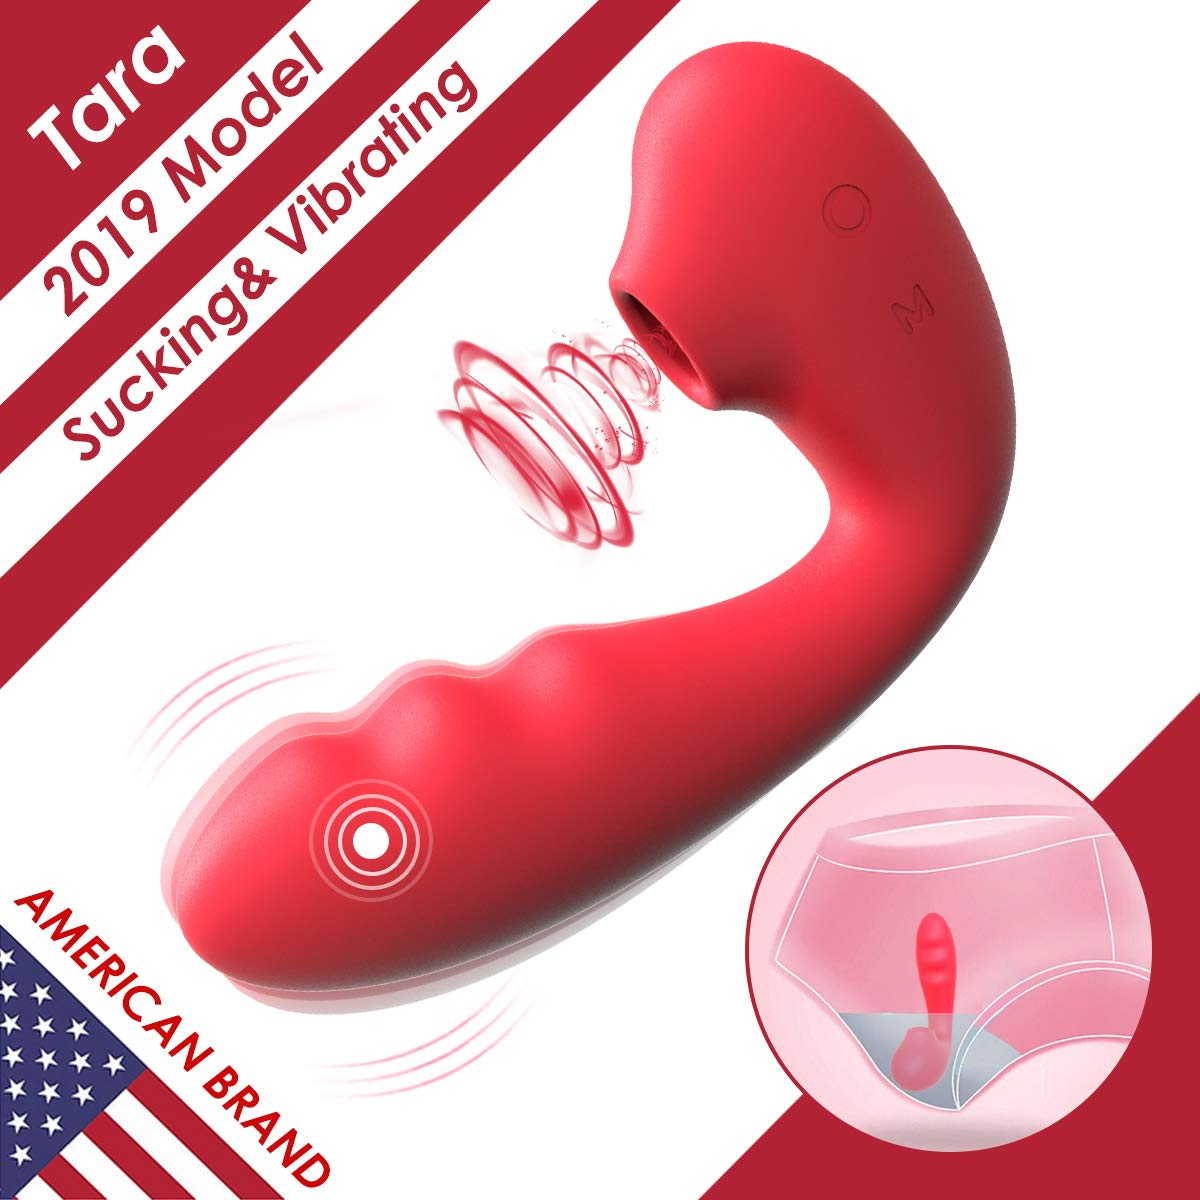 Clitoral Sucking Vibrator, Wearable G Spot Vibrators Waterproof, Rechargeable Clitoris Stimulator with 3 Suction & 10 Vibration Patterns Sex Toys for Women (Red)) by SVAKOM